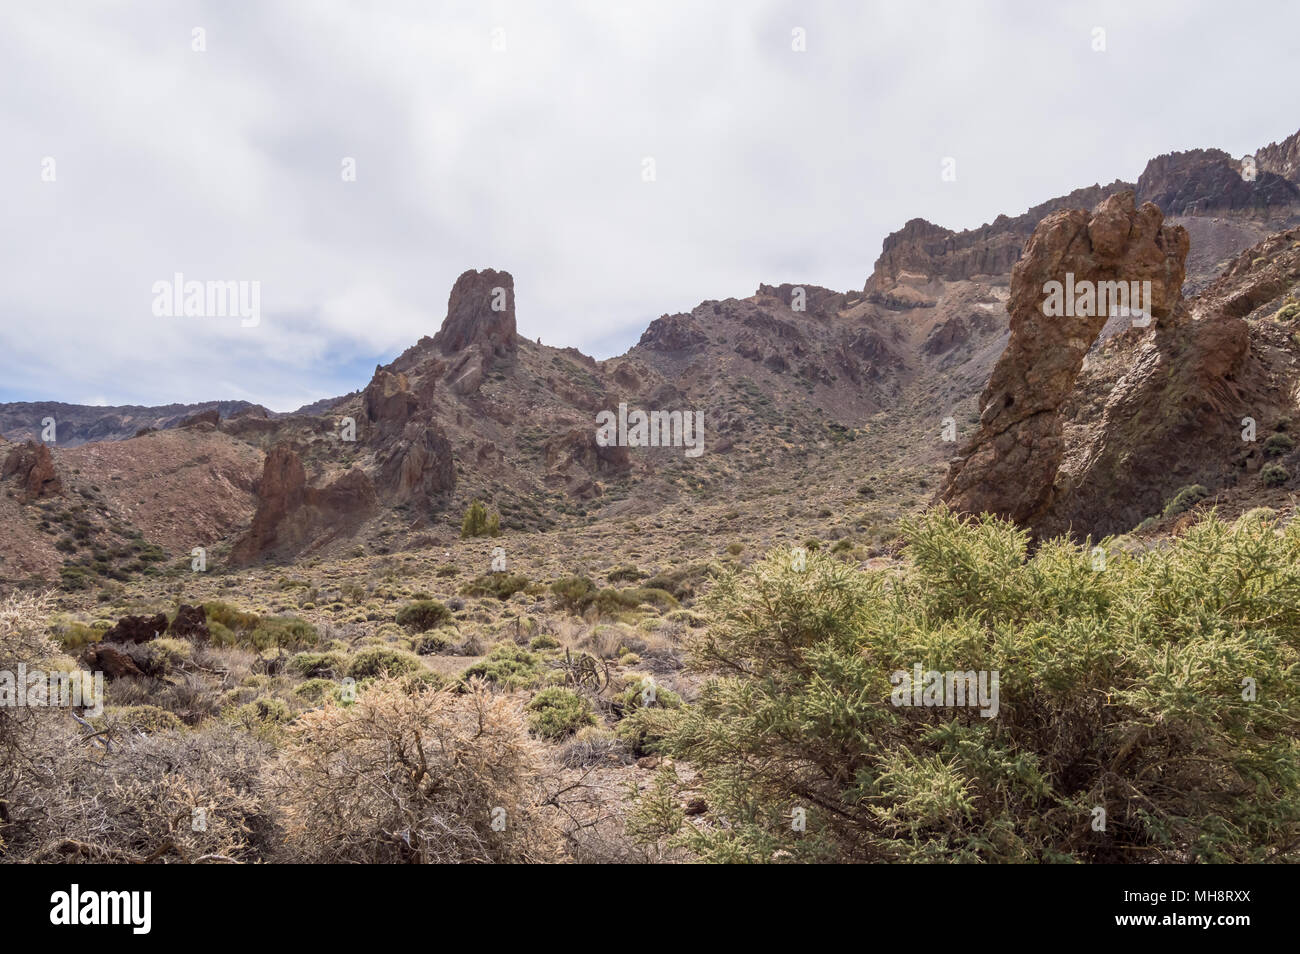 View of the Green Rocks of Los Azulejos in the Teide Park in Tenerife, Spain - Stock Image